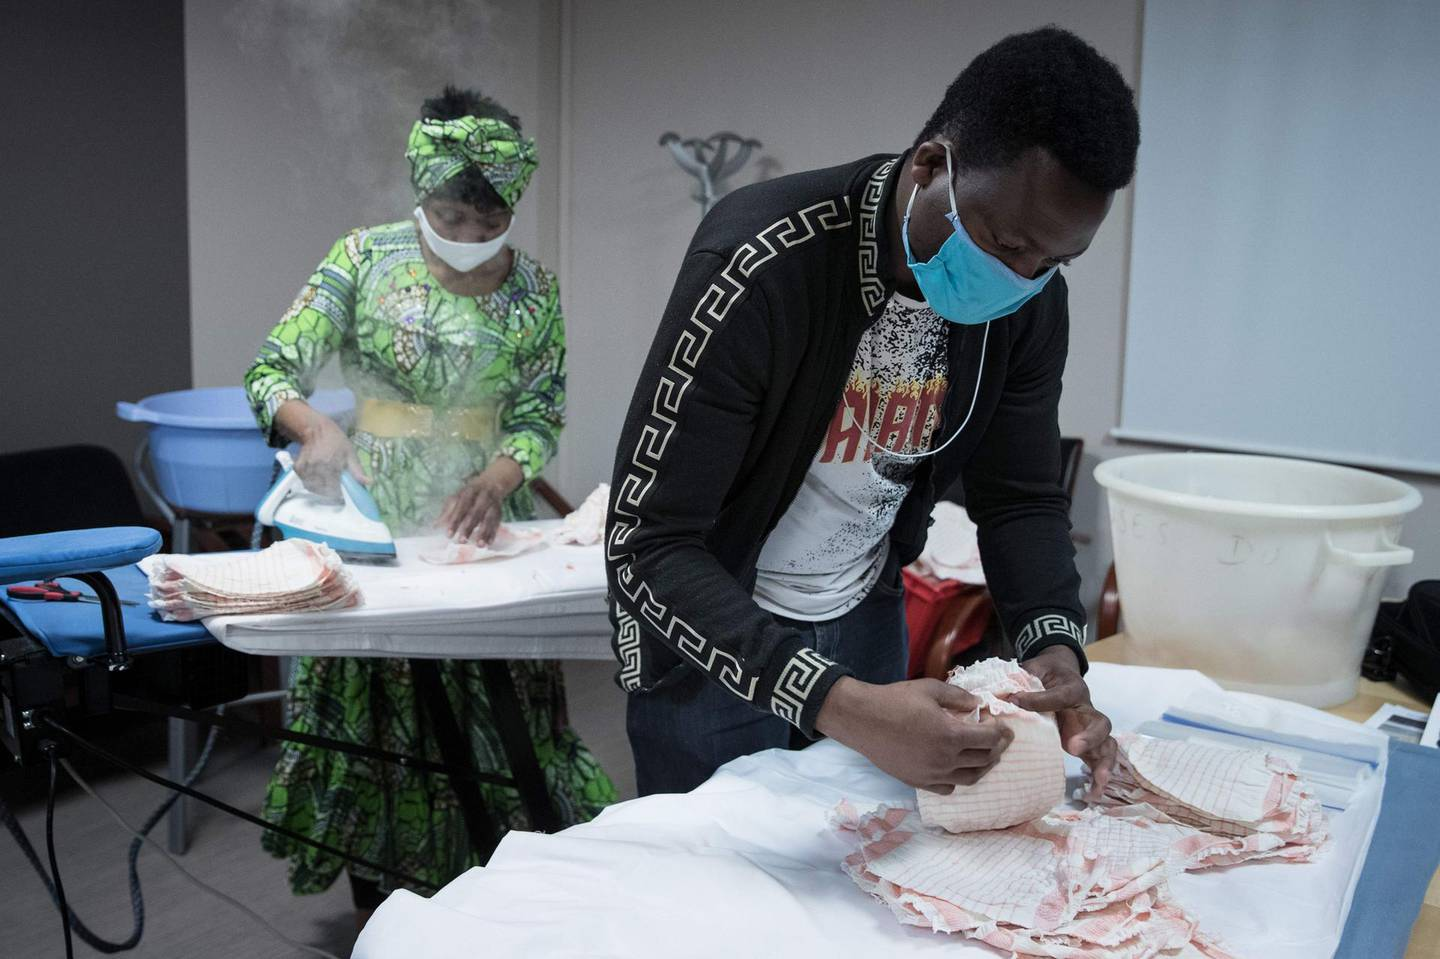 Undocumented immigrants Cameroonian Florence irons home made protective facemasks for The Salvation Army (Armee du Salut) charitable organisation, in Paris, on April 6, 2020, on the twenty-first day of a strict lockdown in France to stop the spread of COVID-19 (novel coronavirus).  / AFP / JOEL SAGET